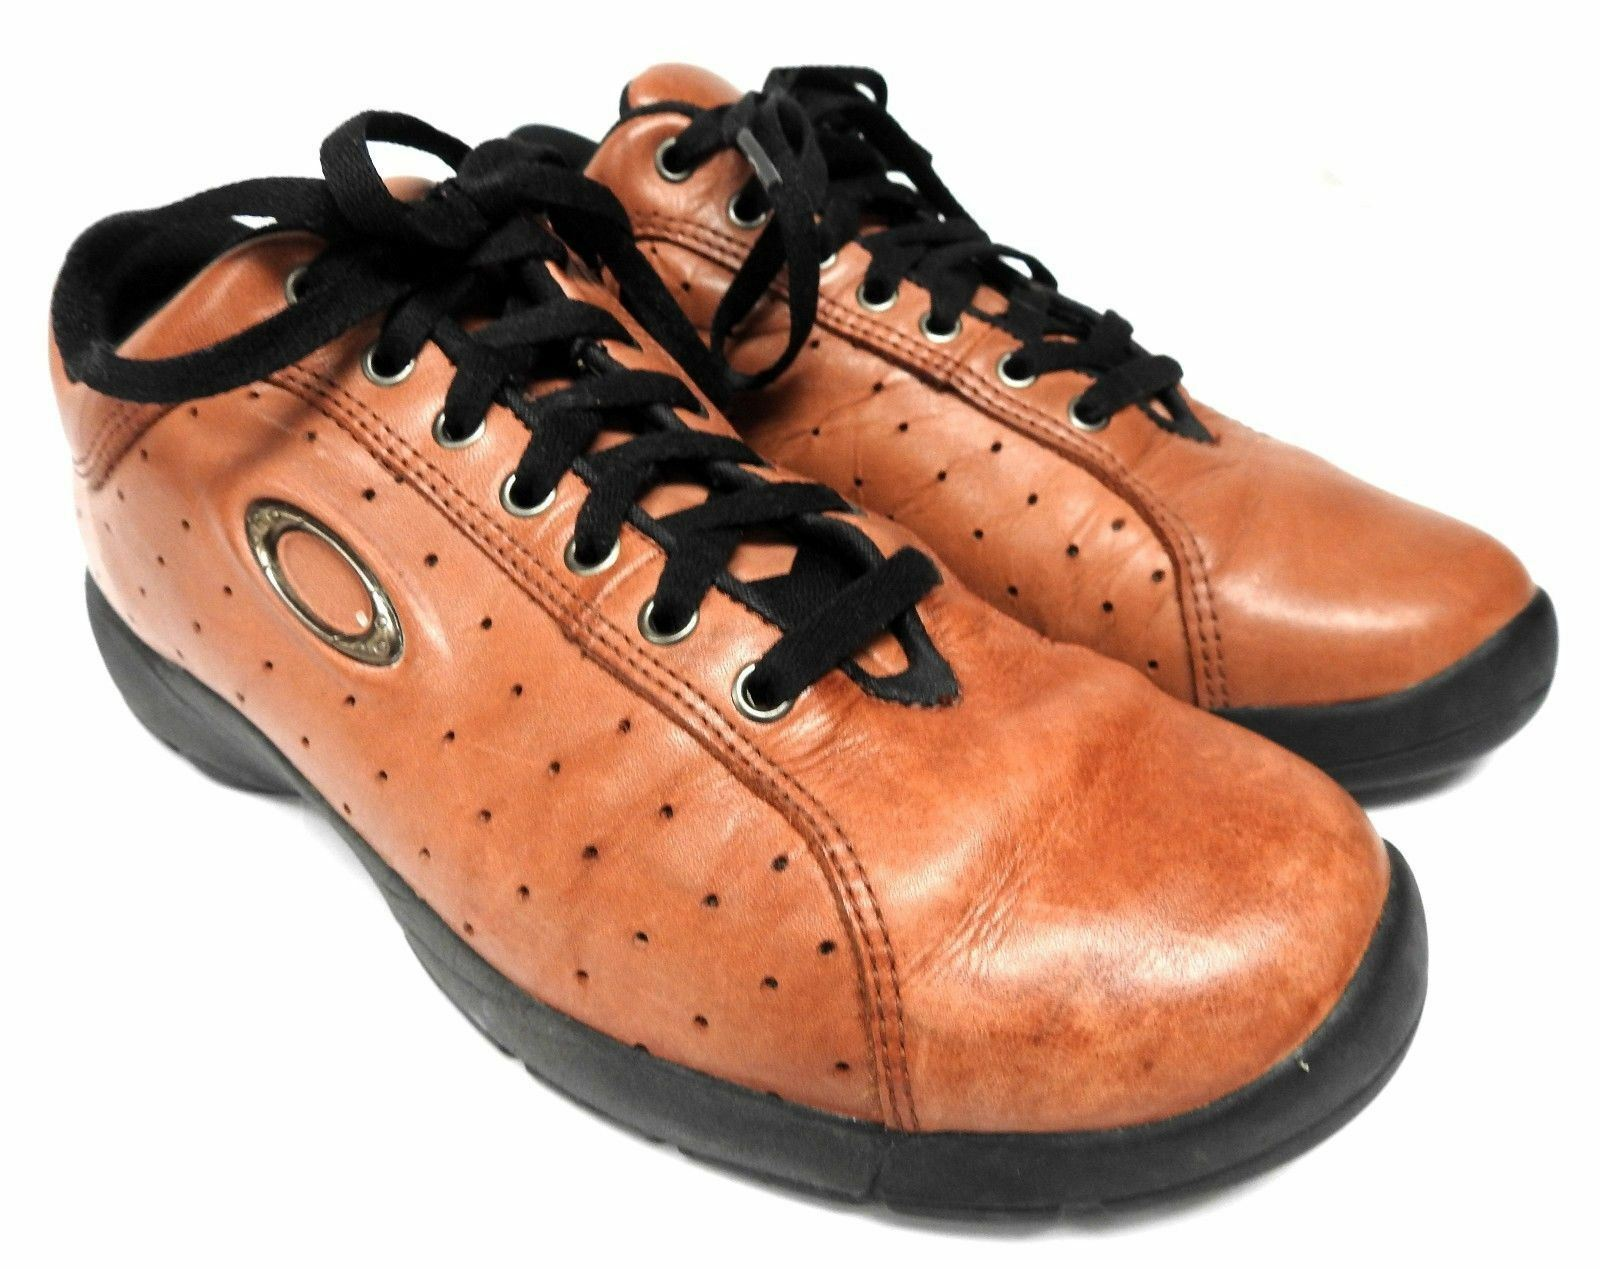 Authentic Oakley Tactical Hiking Trail brown Low leather Shoes USA 9 men's